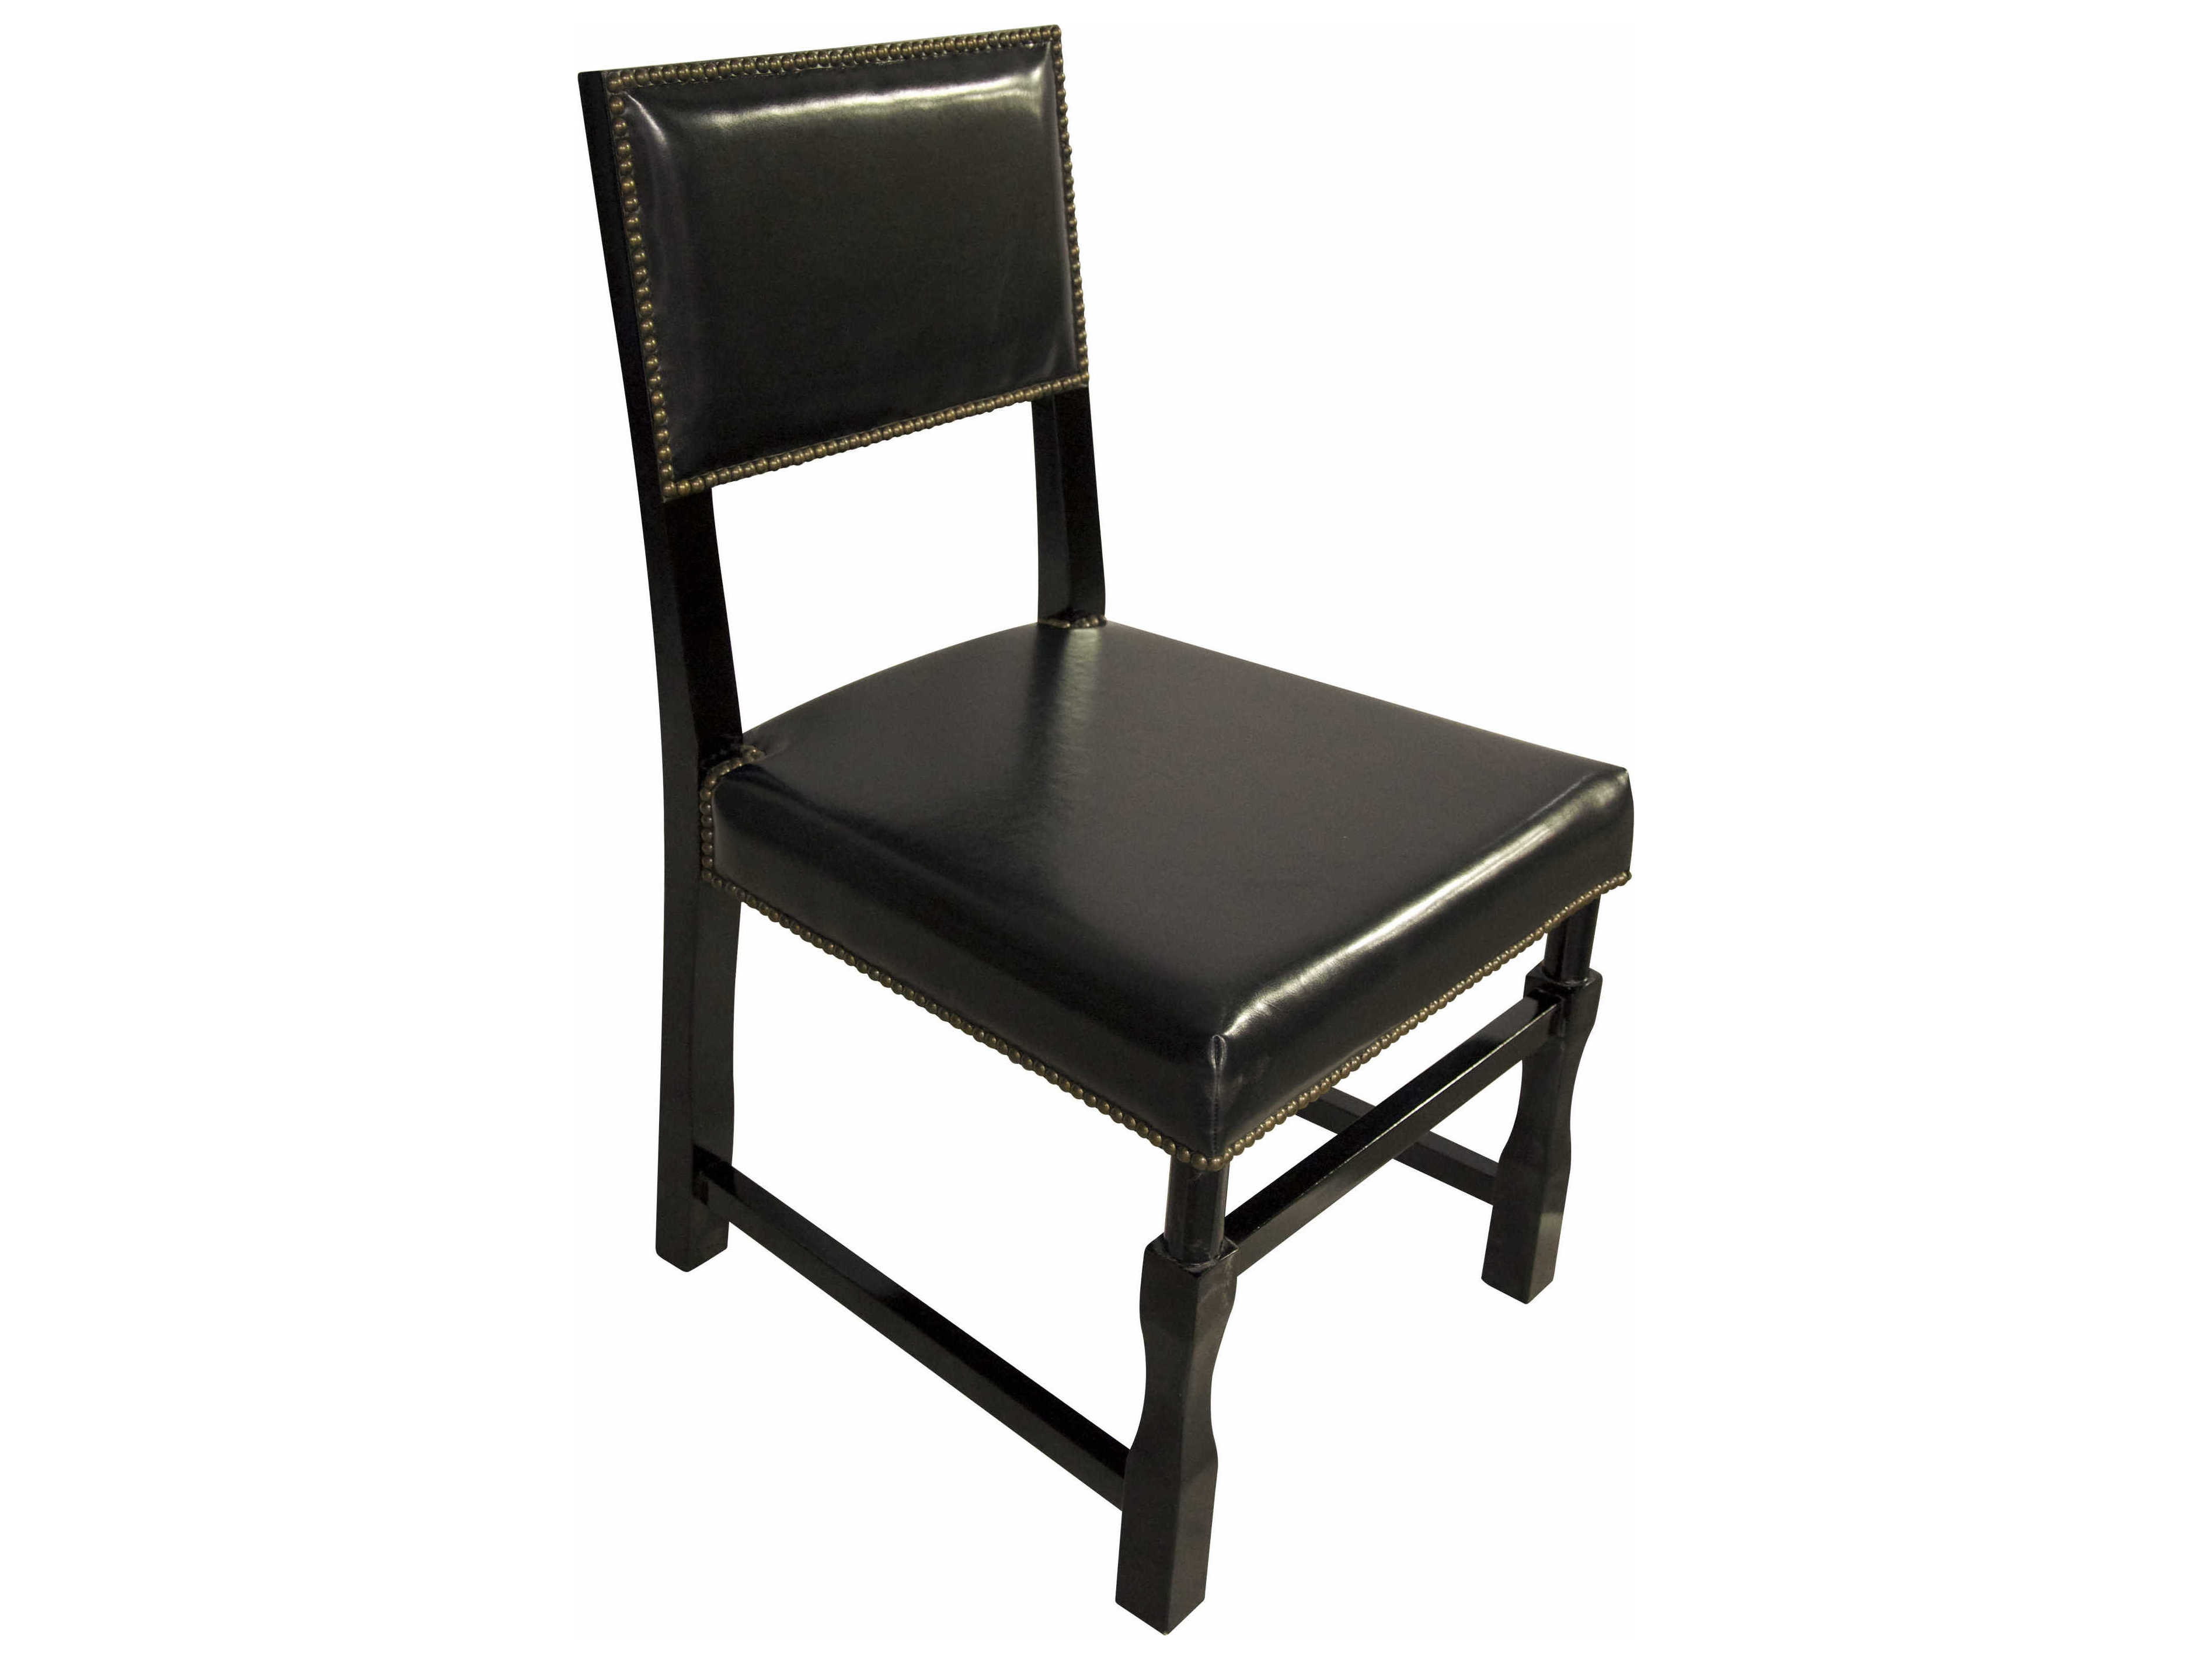 noir dining chairs rocking chair for adults furniture leather square black side